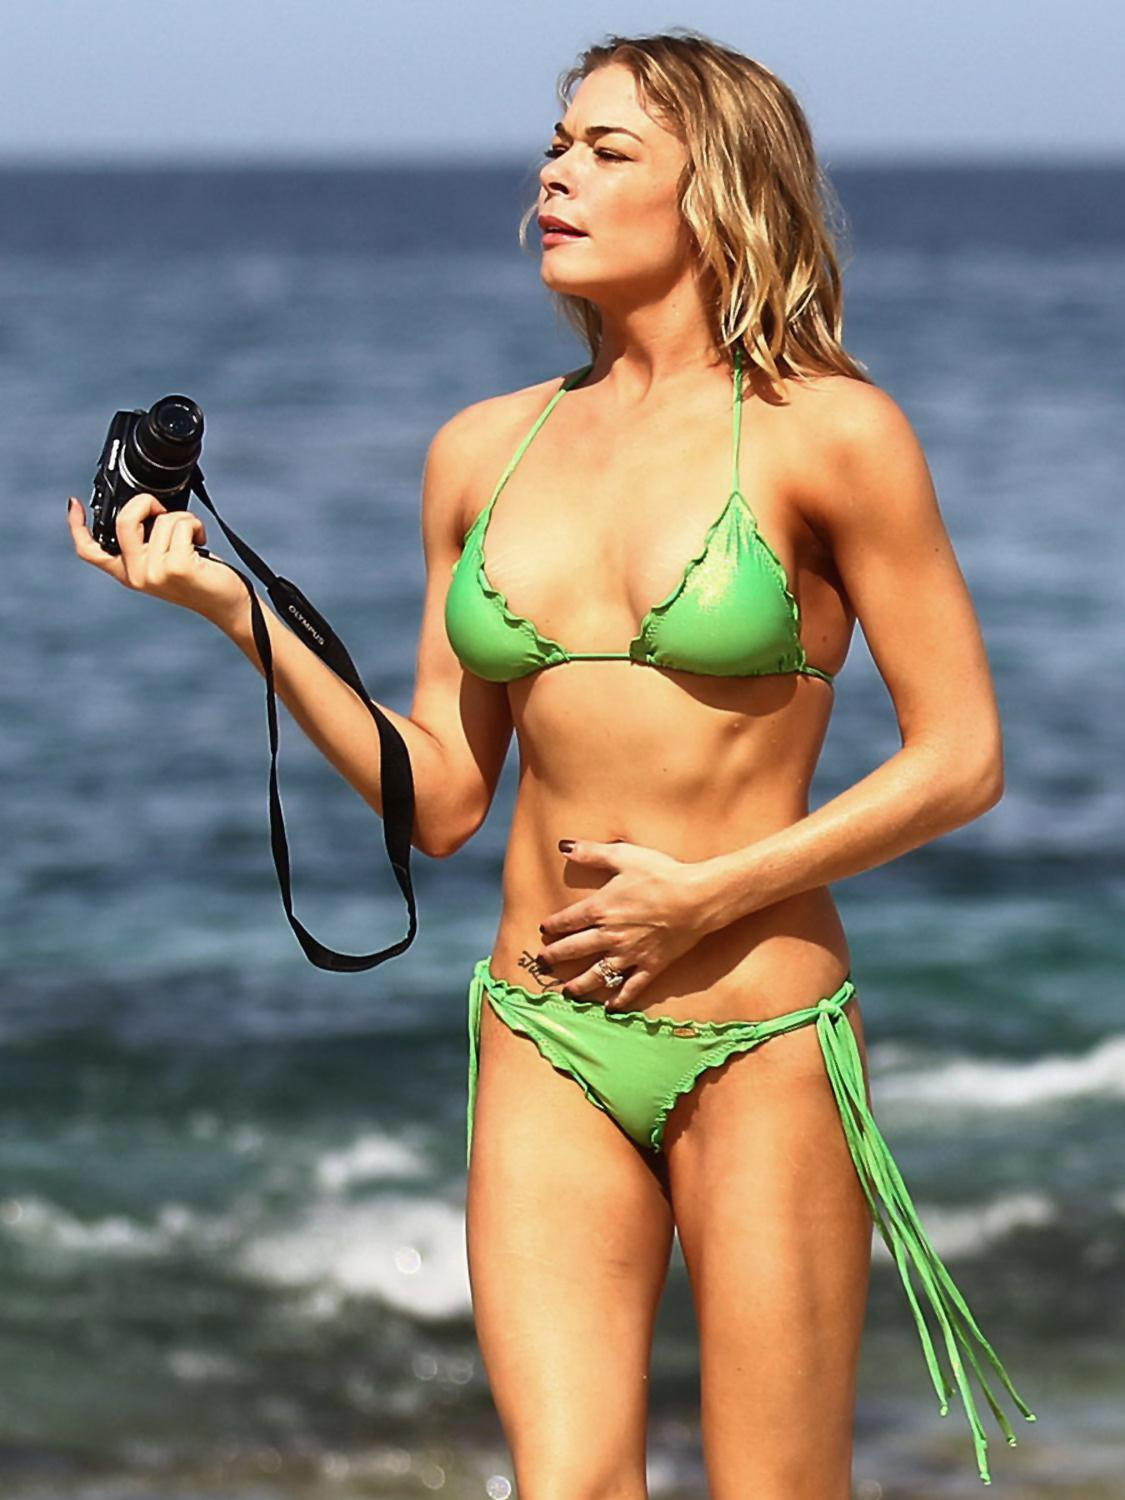 LeAnn Rimes nude, topless pictures,